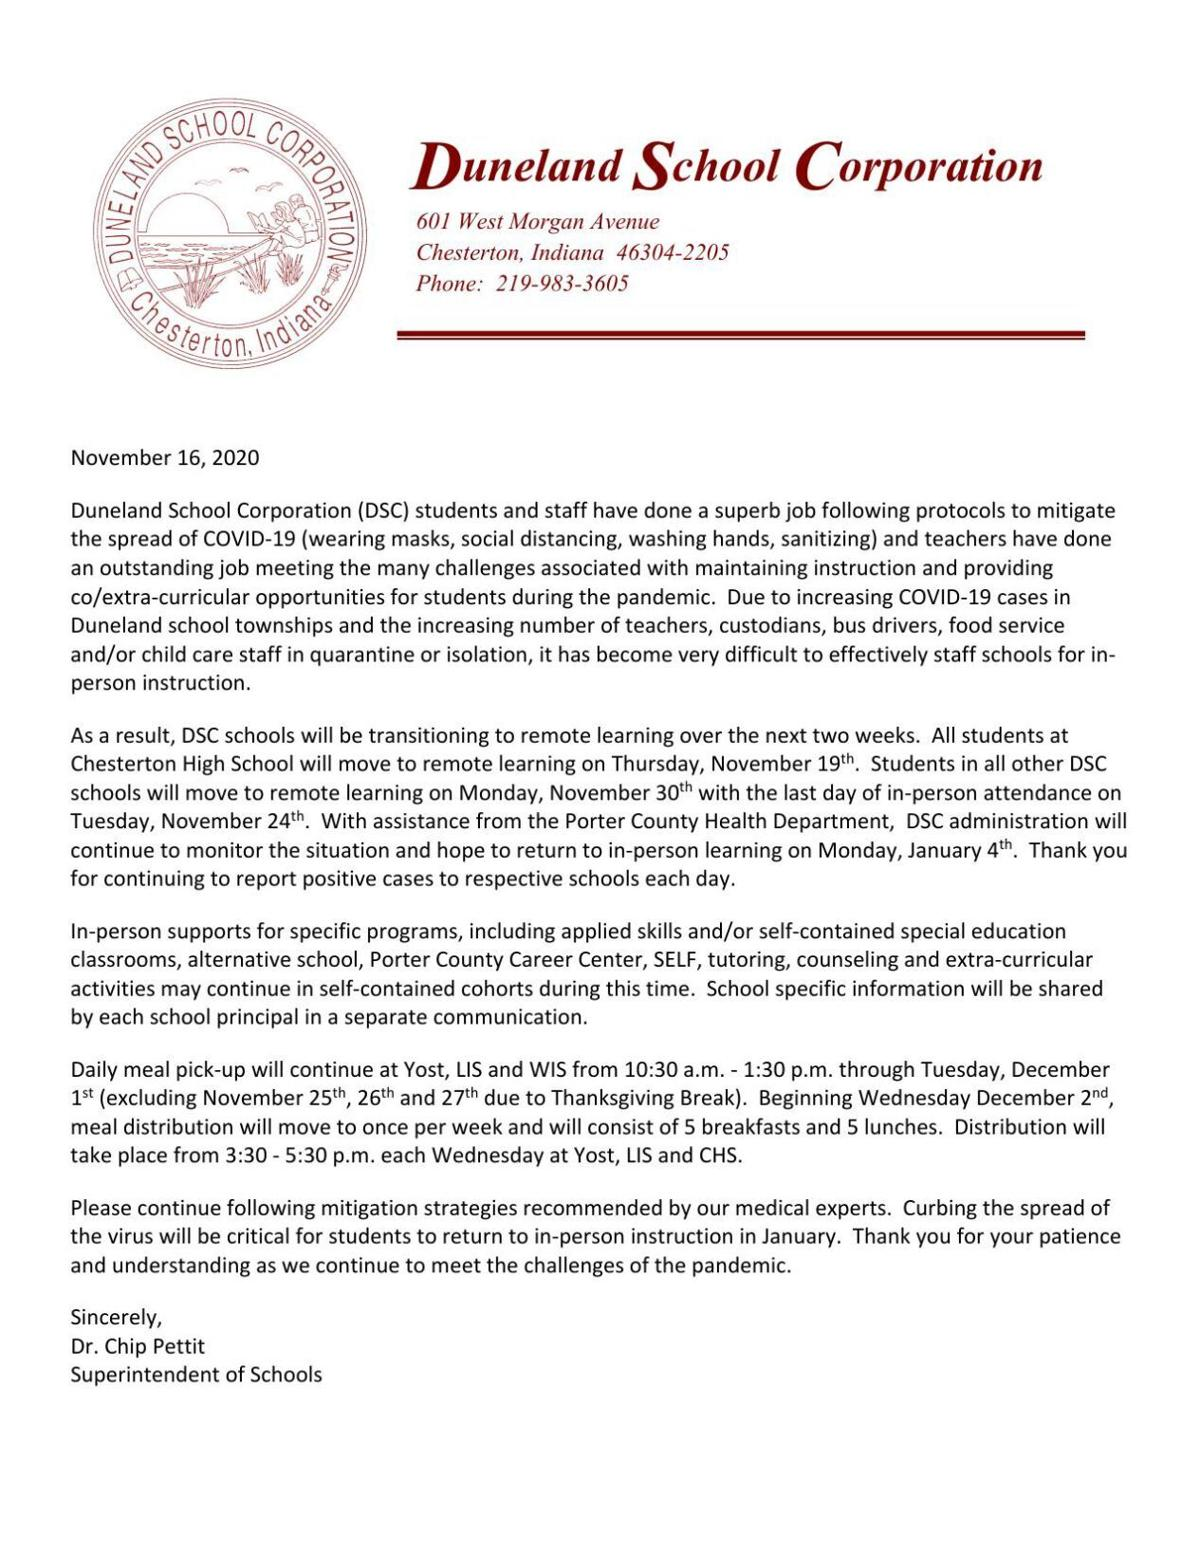 Duneland School Corp. transition to remote learning Nov. 16, 2020 letter